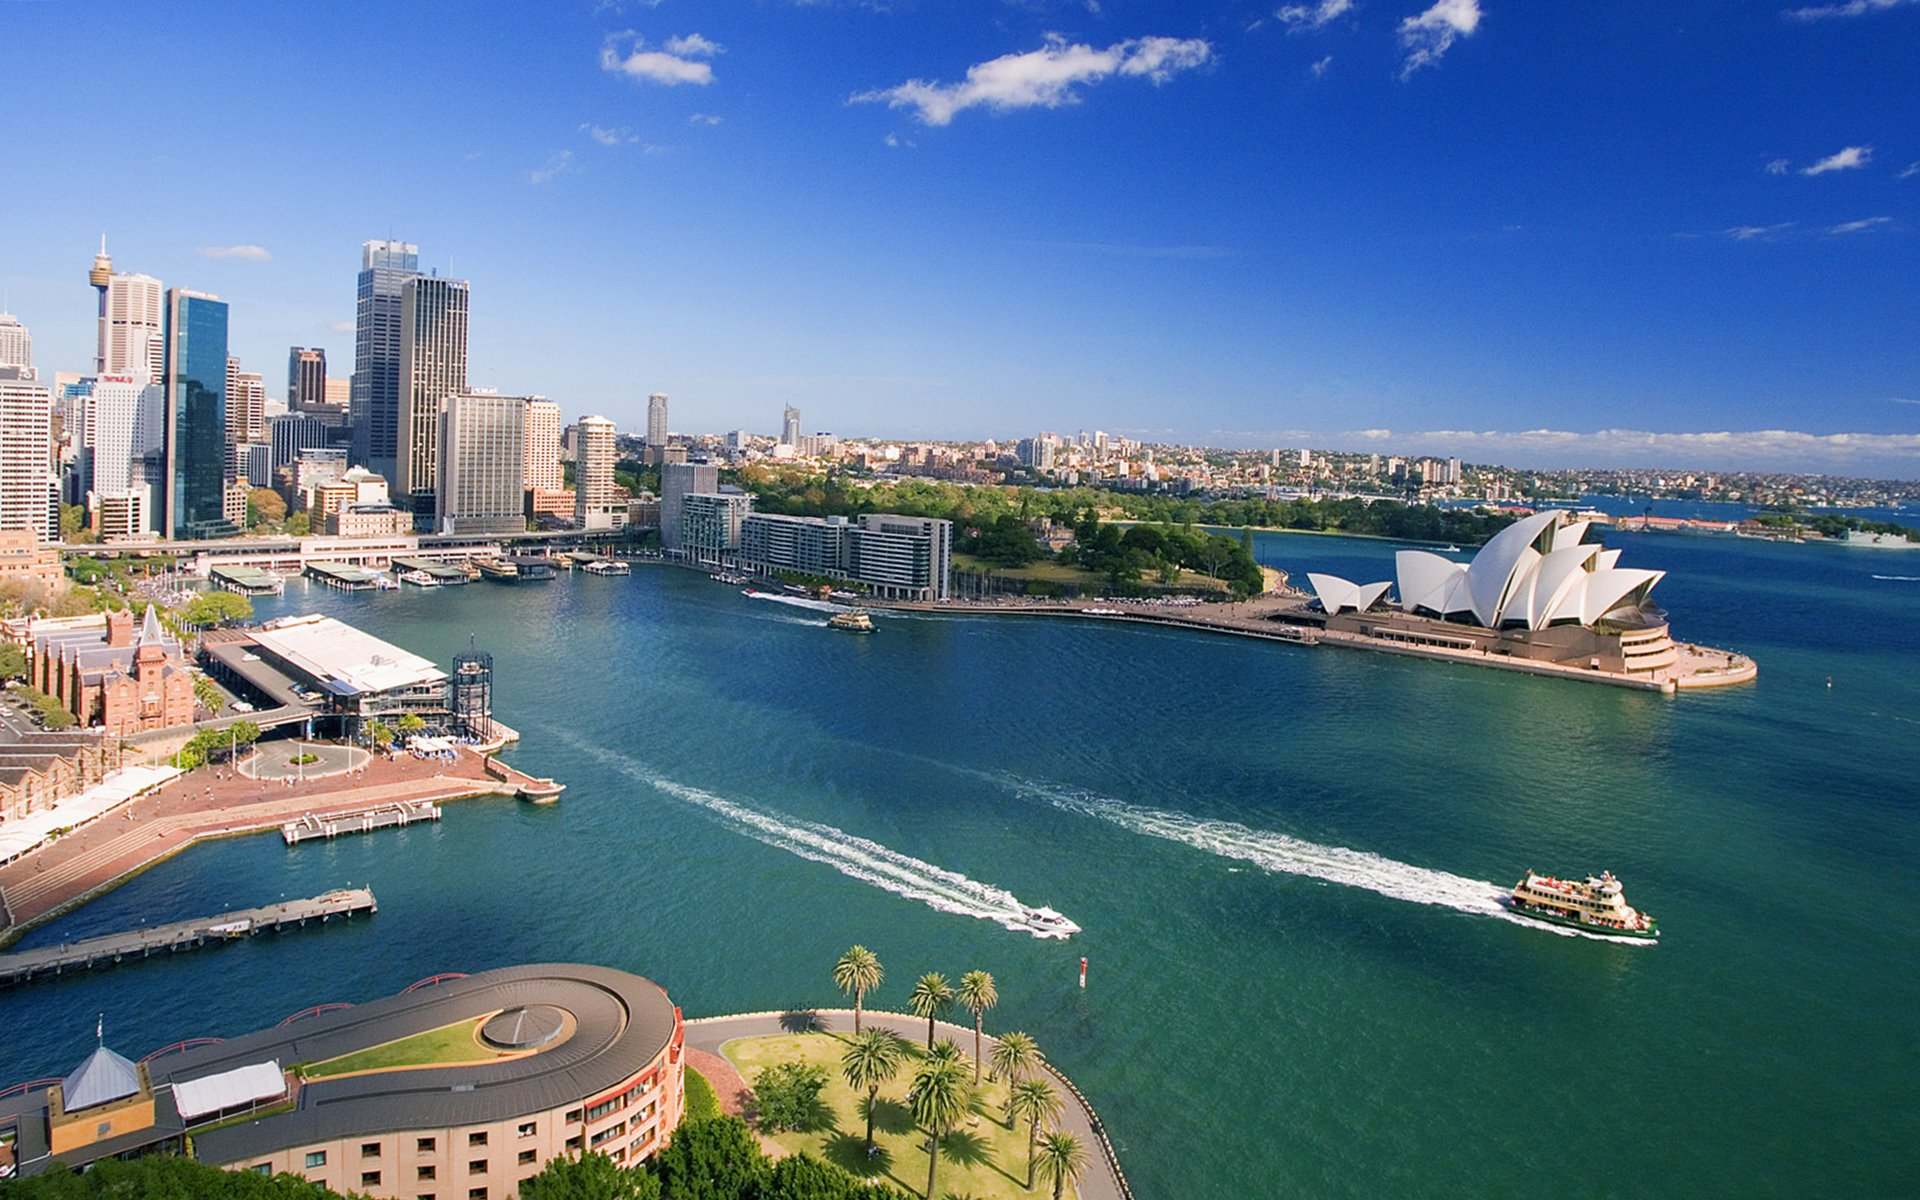 sydney australia awesome pics hd city laptop backgrounds wallpapers download